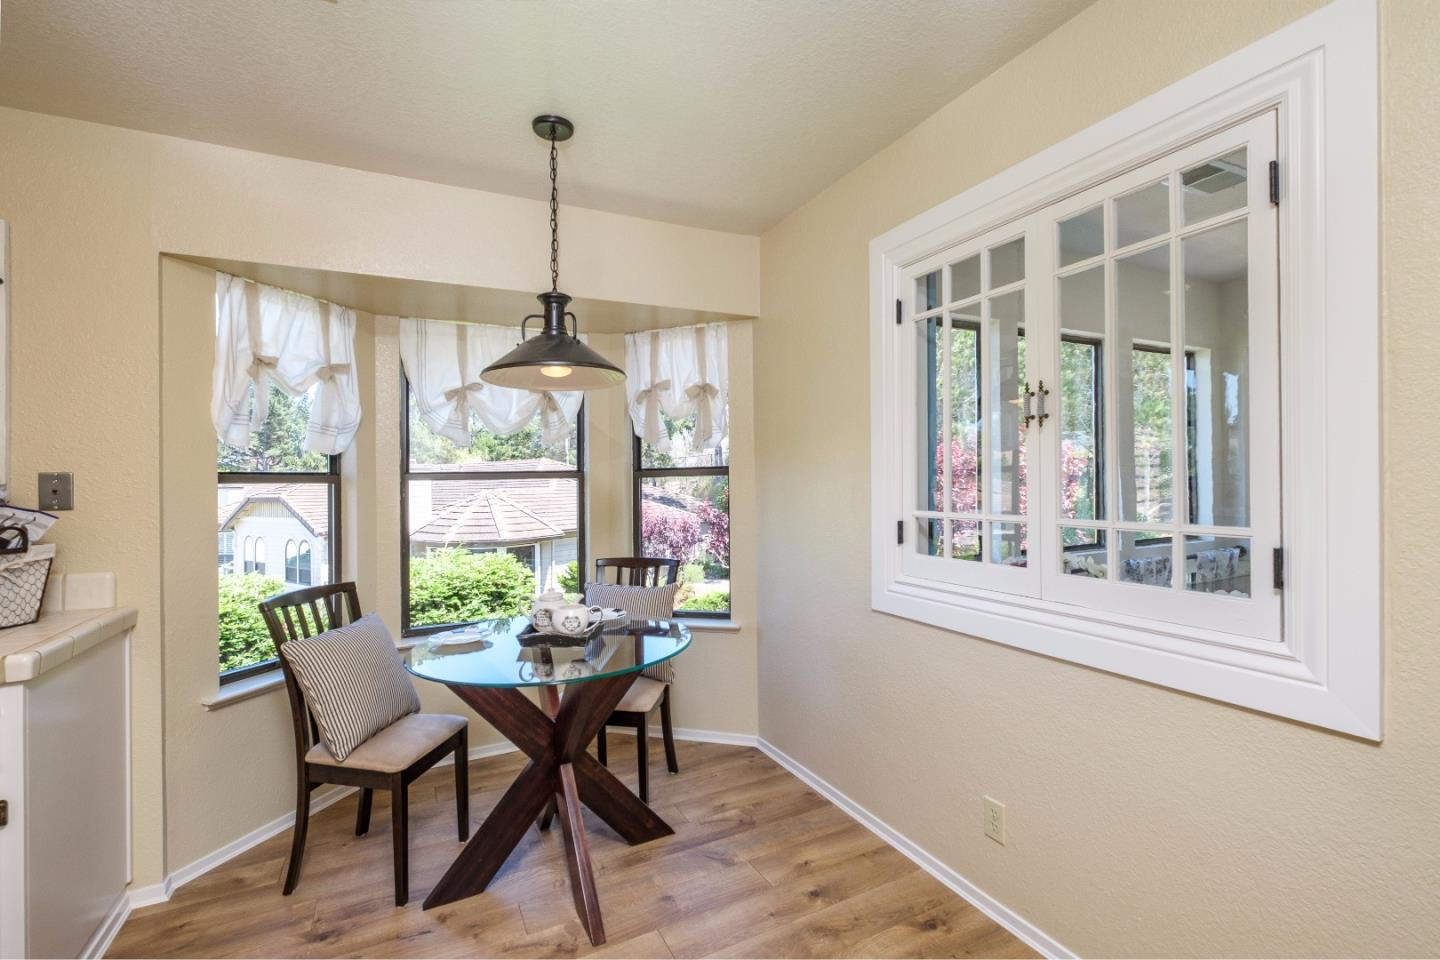 Additional photo for property listing at 3000 Ransford Circle  Pacific Grove, Kalifornien 93950 Vereinigte Staaten